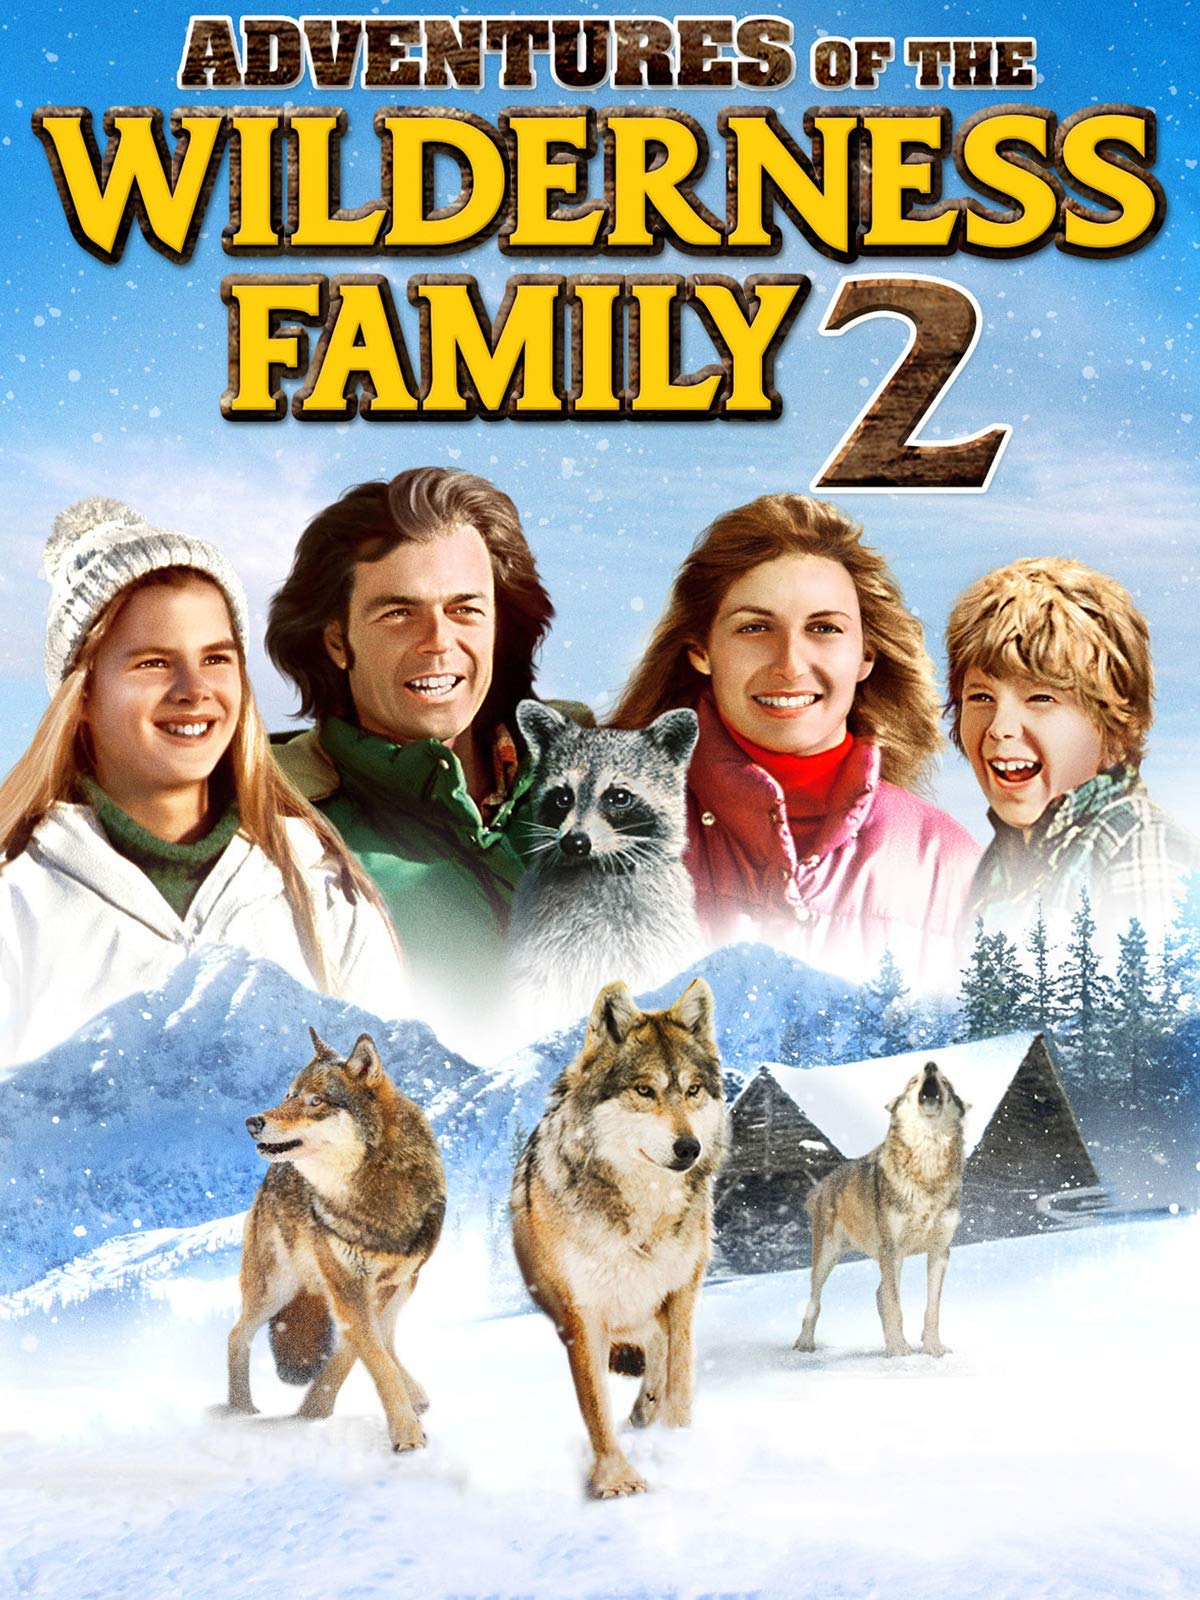 Adventures of the Wilderness Family 2 on Amazon Prime Video UK